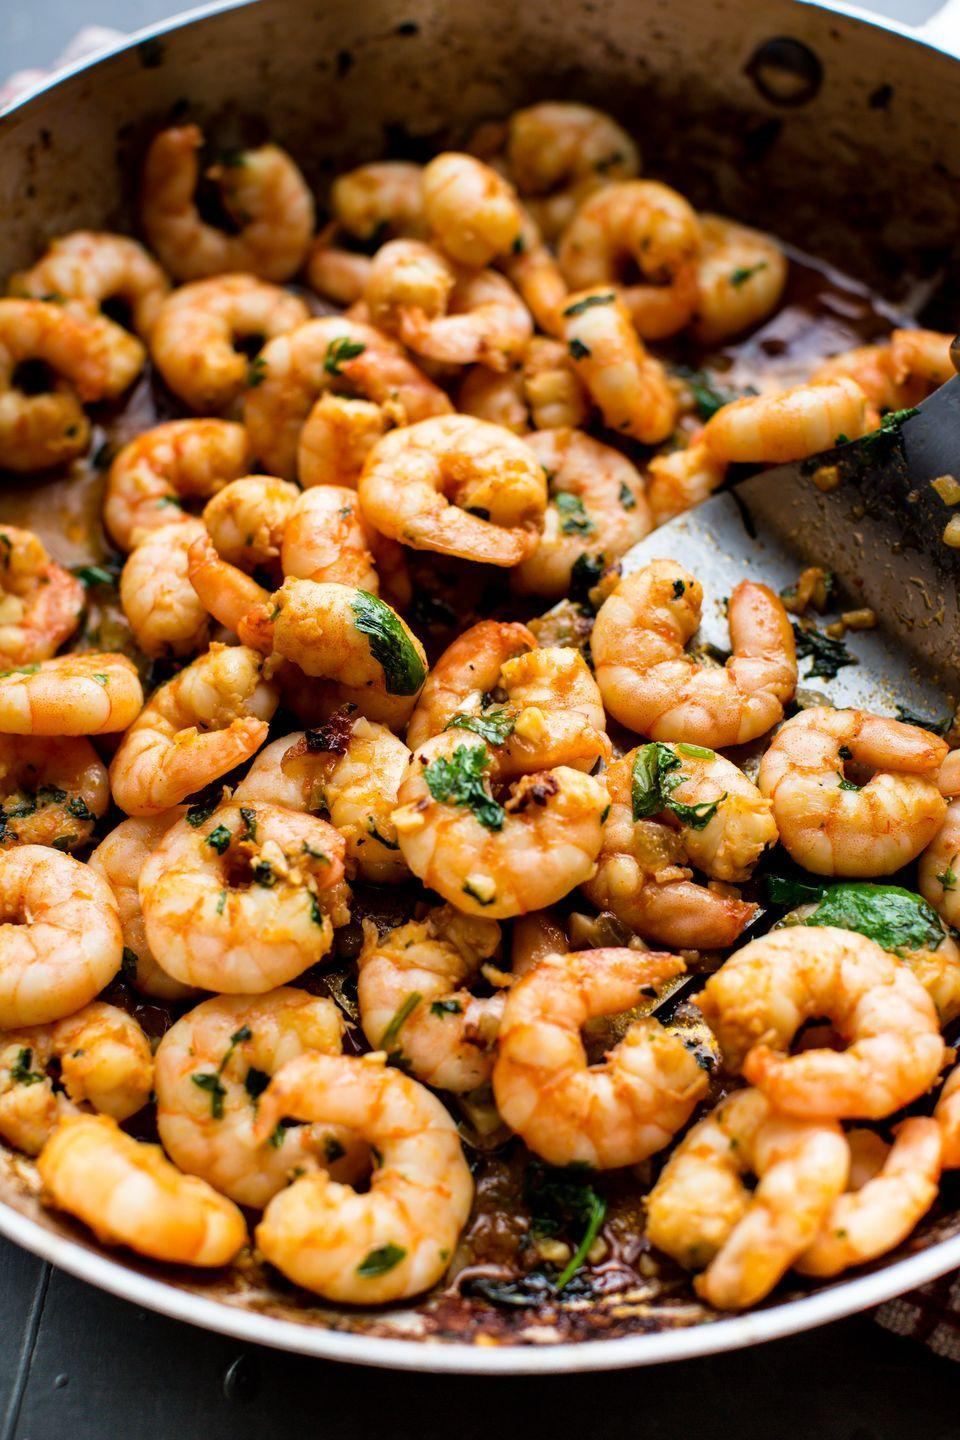 "<p>Dinner has never been easier! This slightly spicy and madly flavorful garlic cilantro shrimp comes together in minutes.</p><p>Get the recipe from <a href=""https://www.delish.com/cooking/recipe-ideas/recipes/a53446/garlic-cilantro-shrimp-recipe/"" rel=""nofollow noopener"" target=""_blank"" data-ylk=""slk:Delish"" class=""link rapid-noclick-resp"">Delish</a>.</p>"